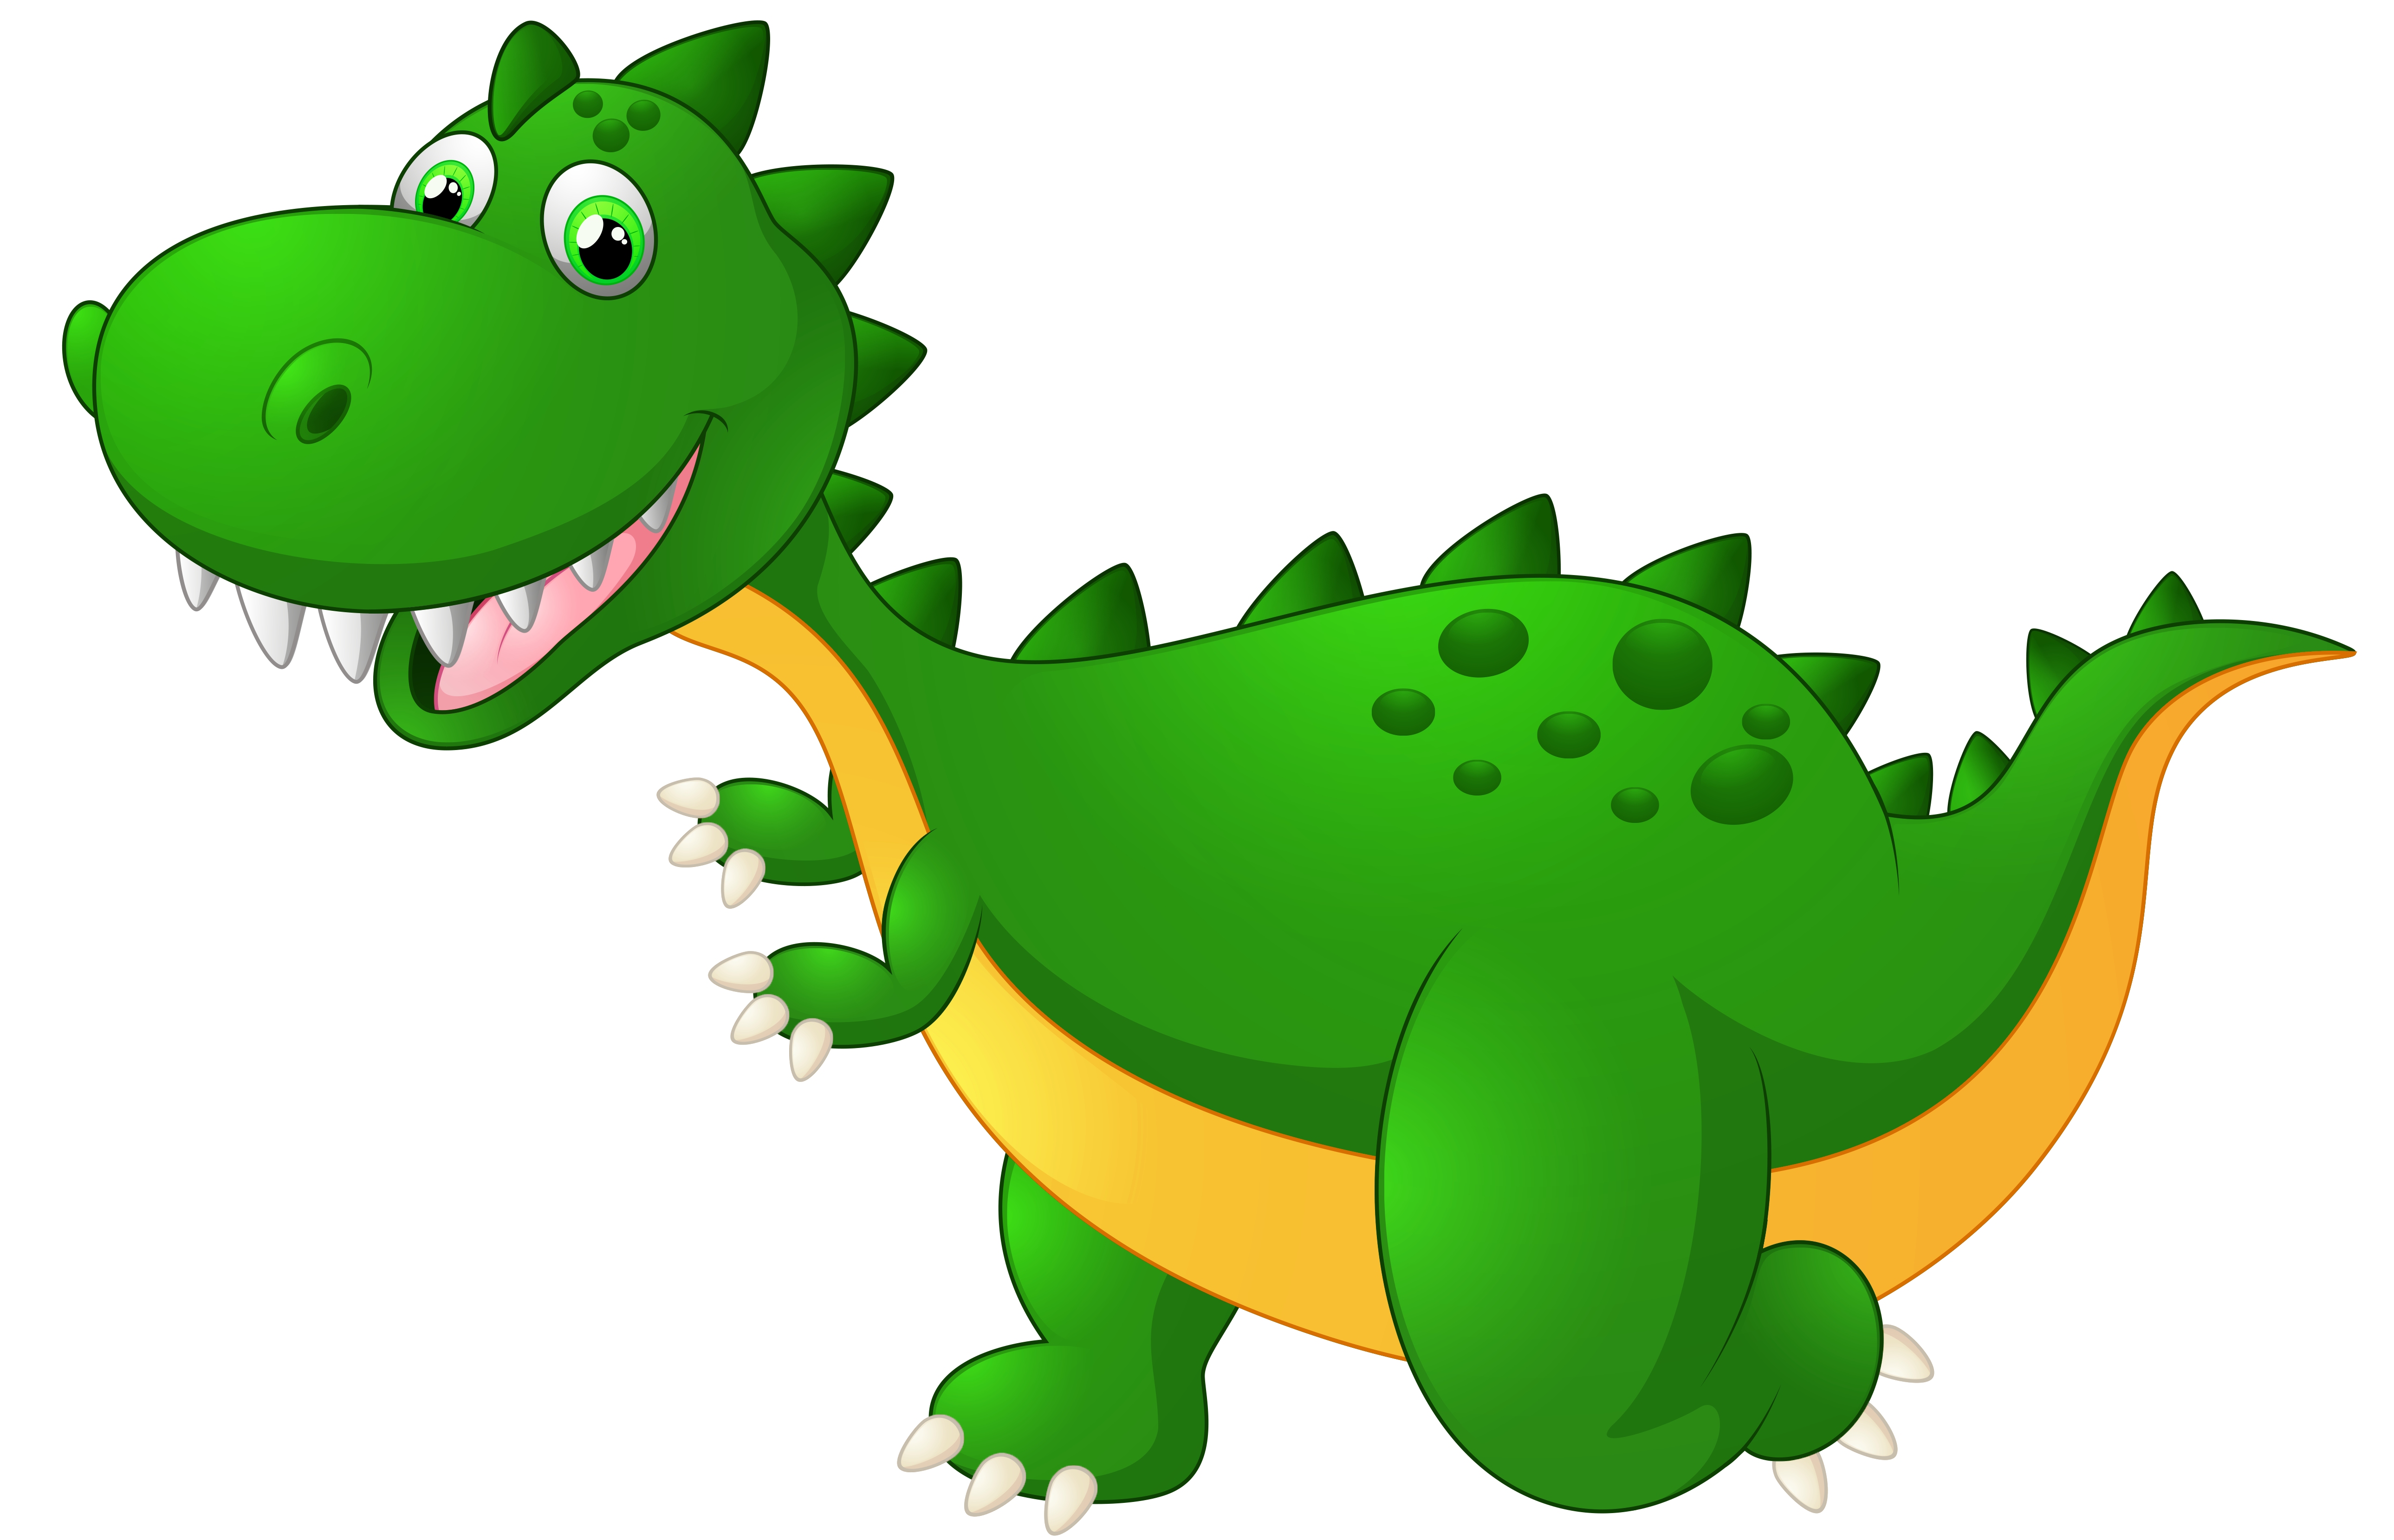 Cute Dragon Cartoon PNG Clipart Image.